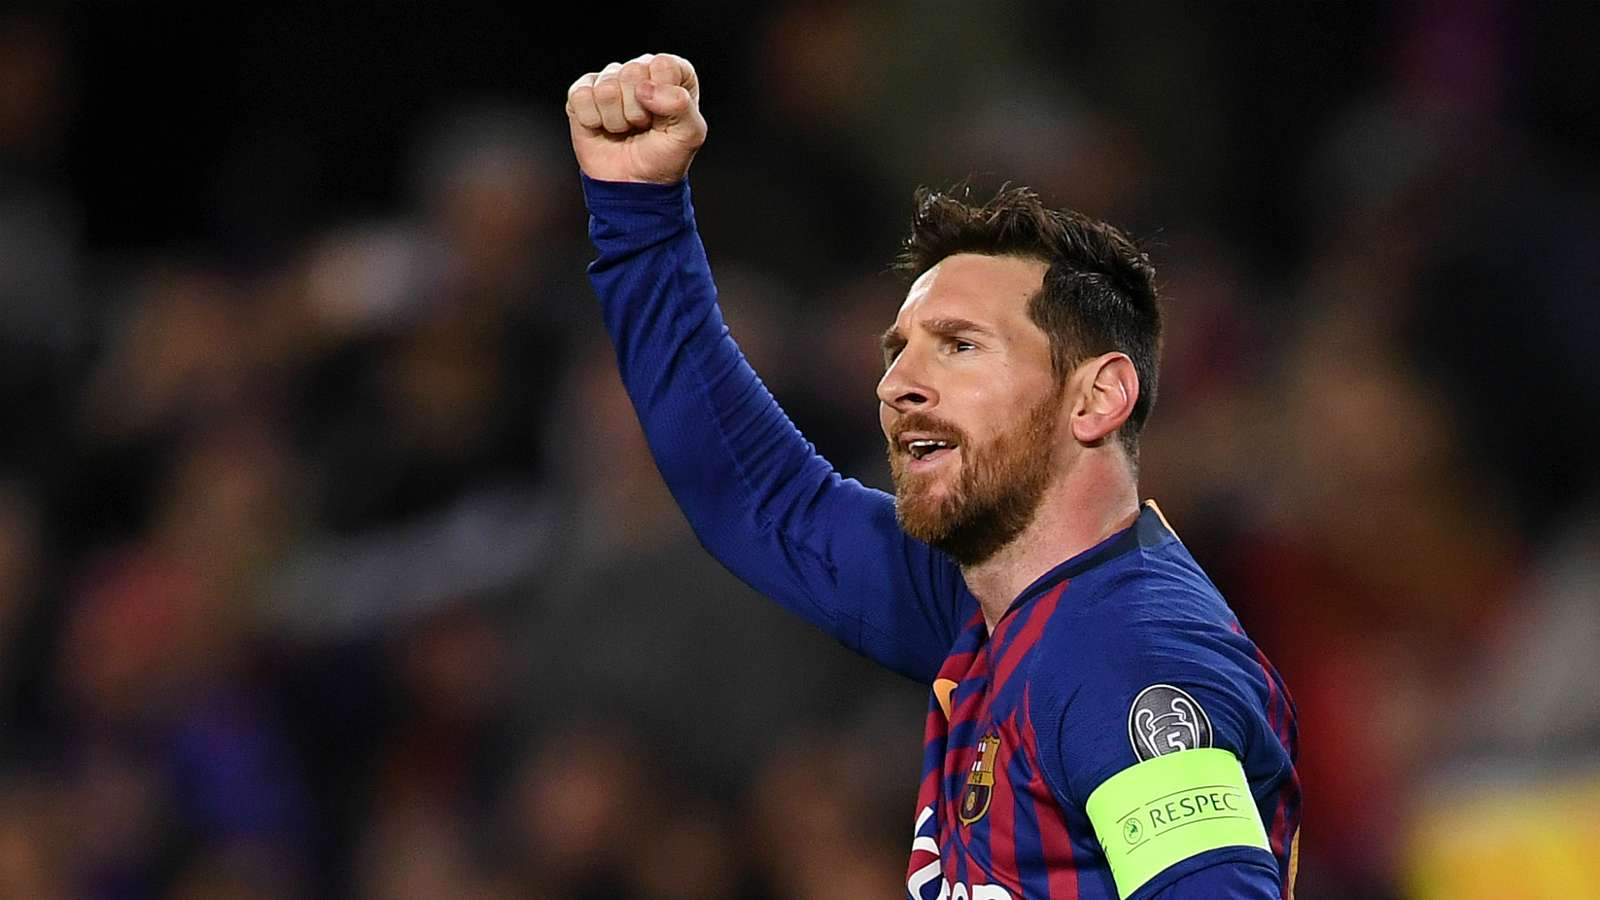 lionel messi r5mm6naa5pxz1s72iomewaycq - Barcelona vs Lyon 5-1: UEFA Champions League Match Report & Highlights [Video]